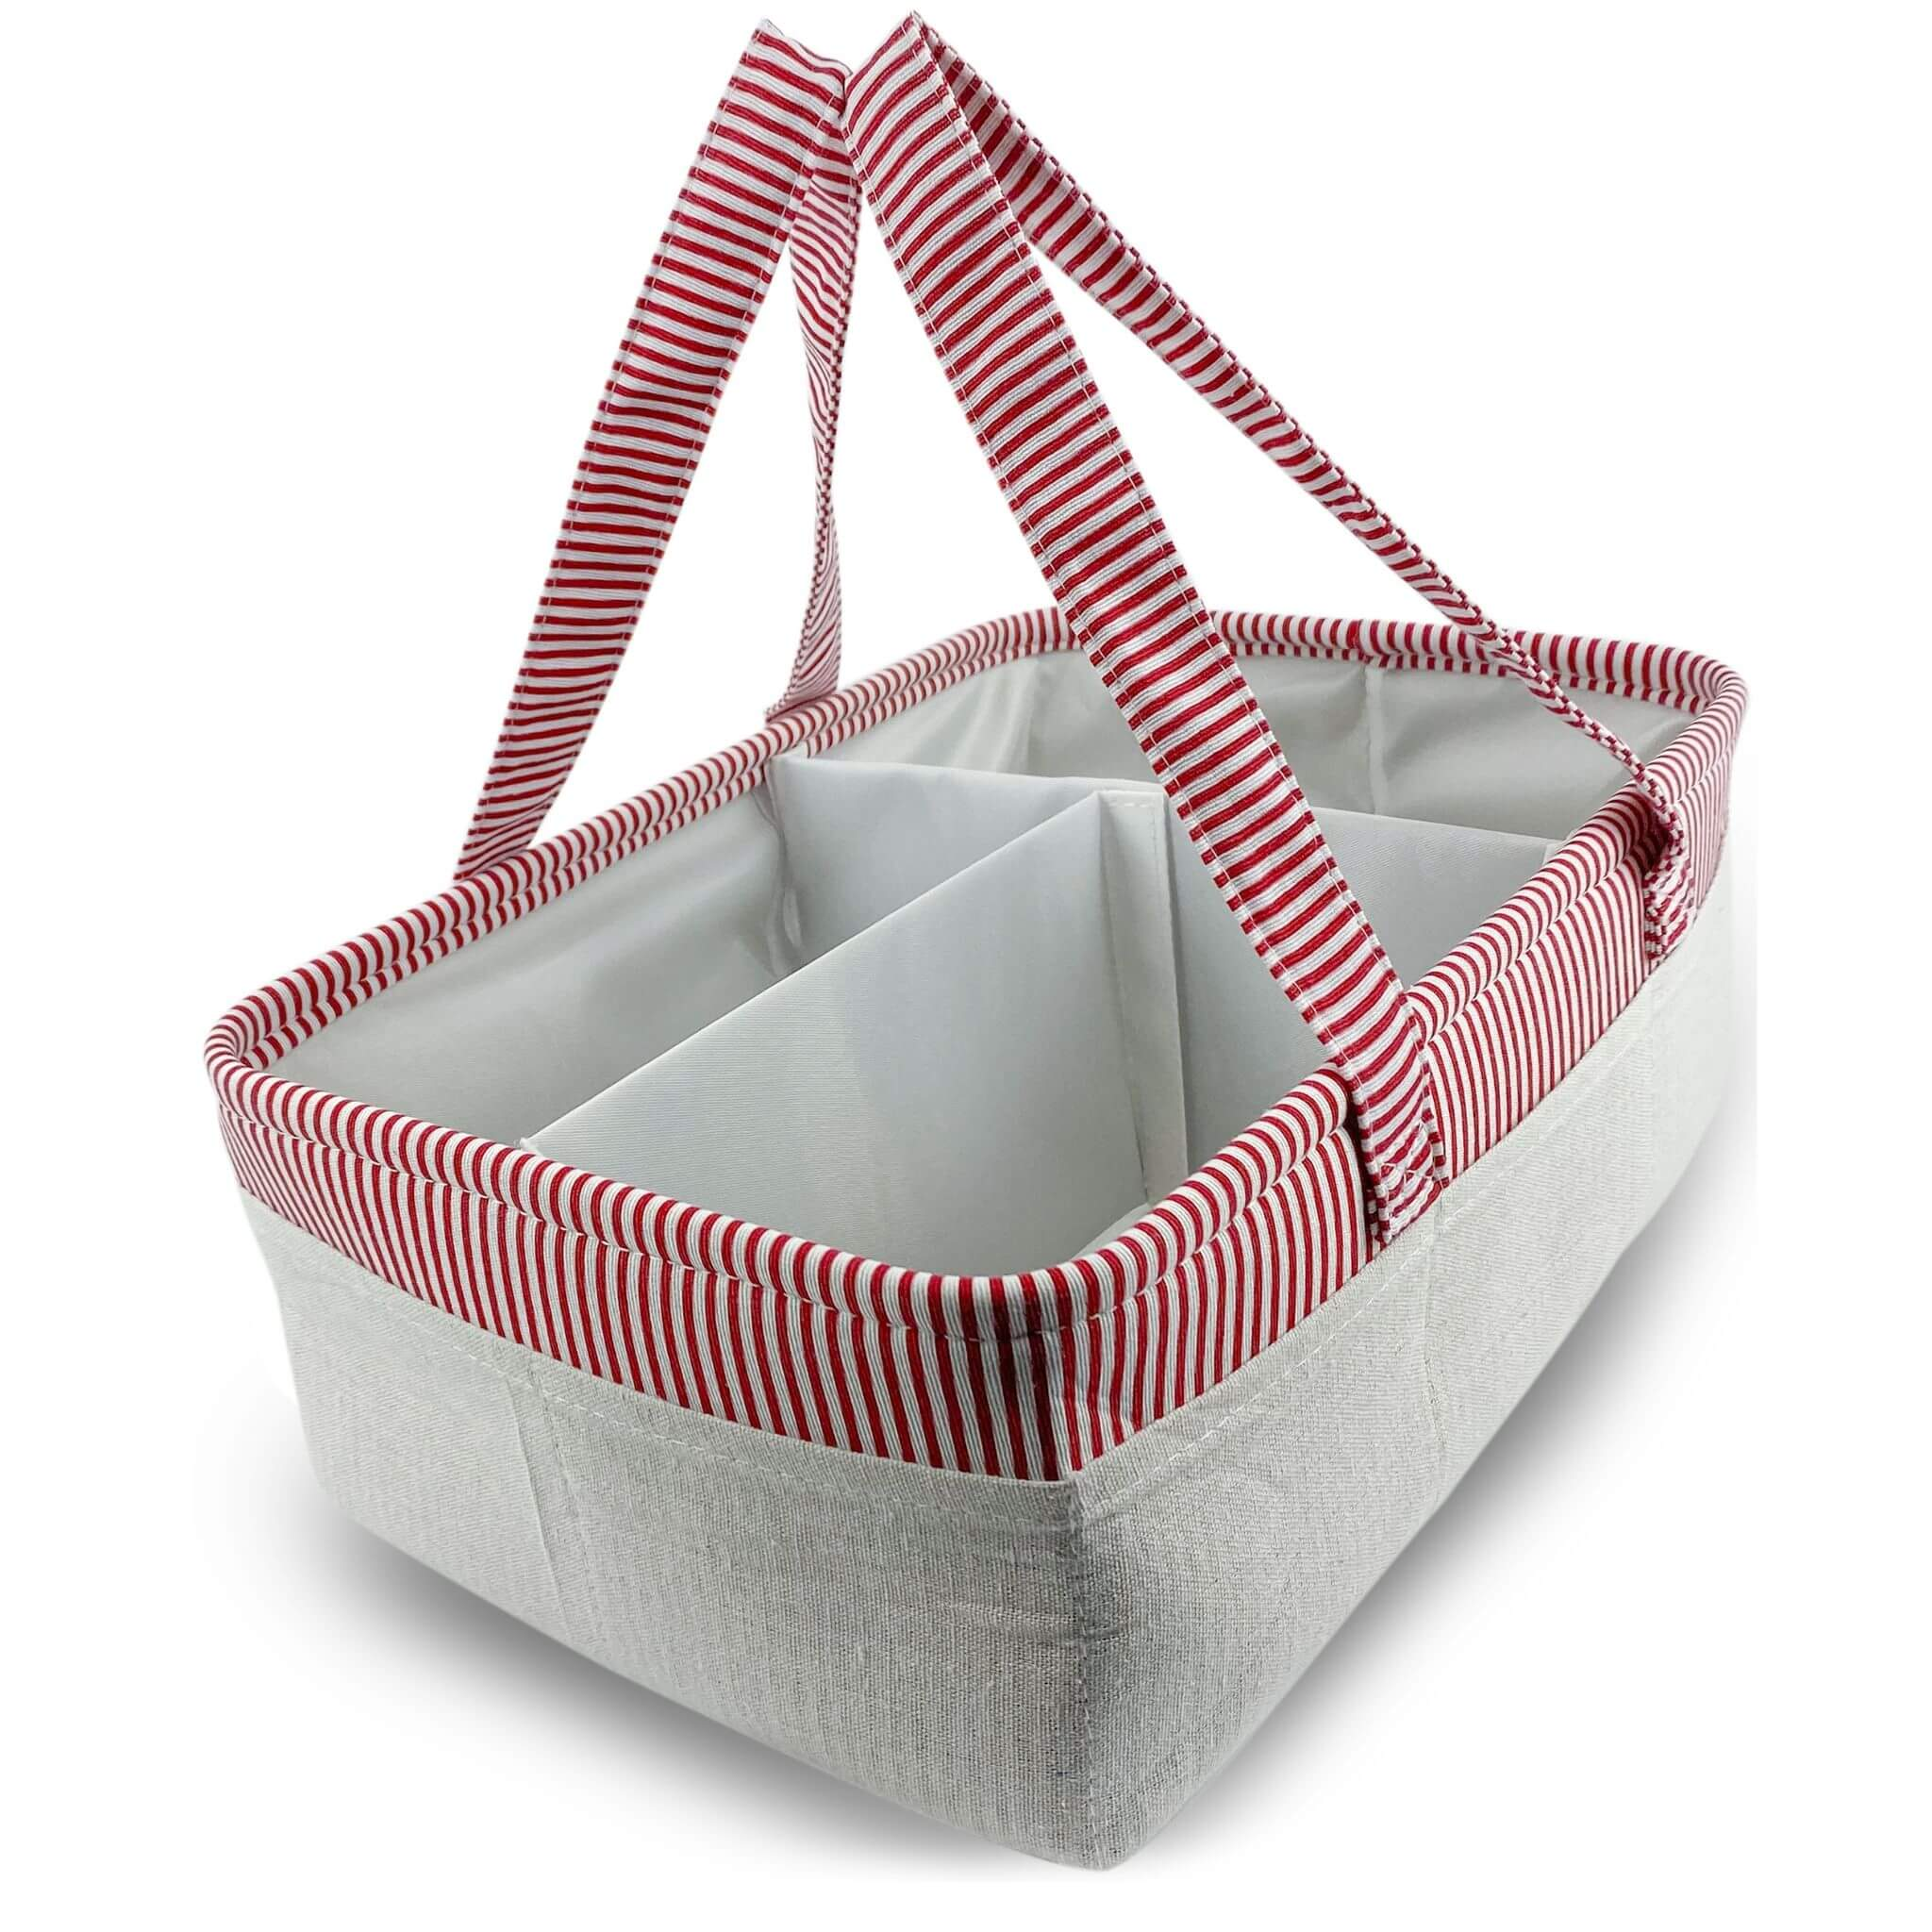 diaper organizer in red from we care vida shop